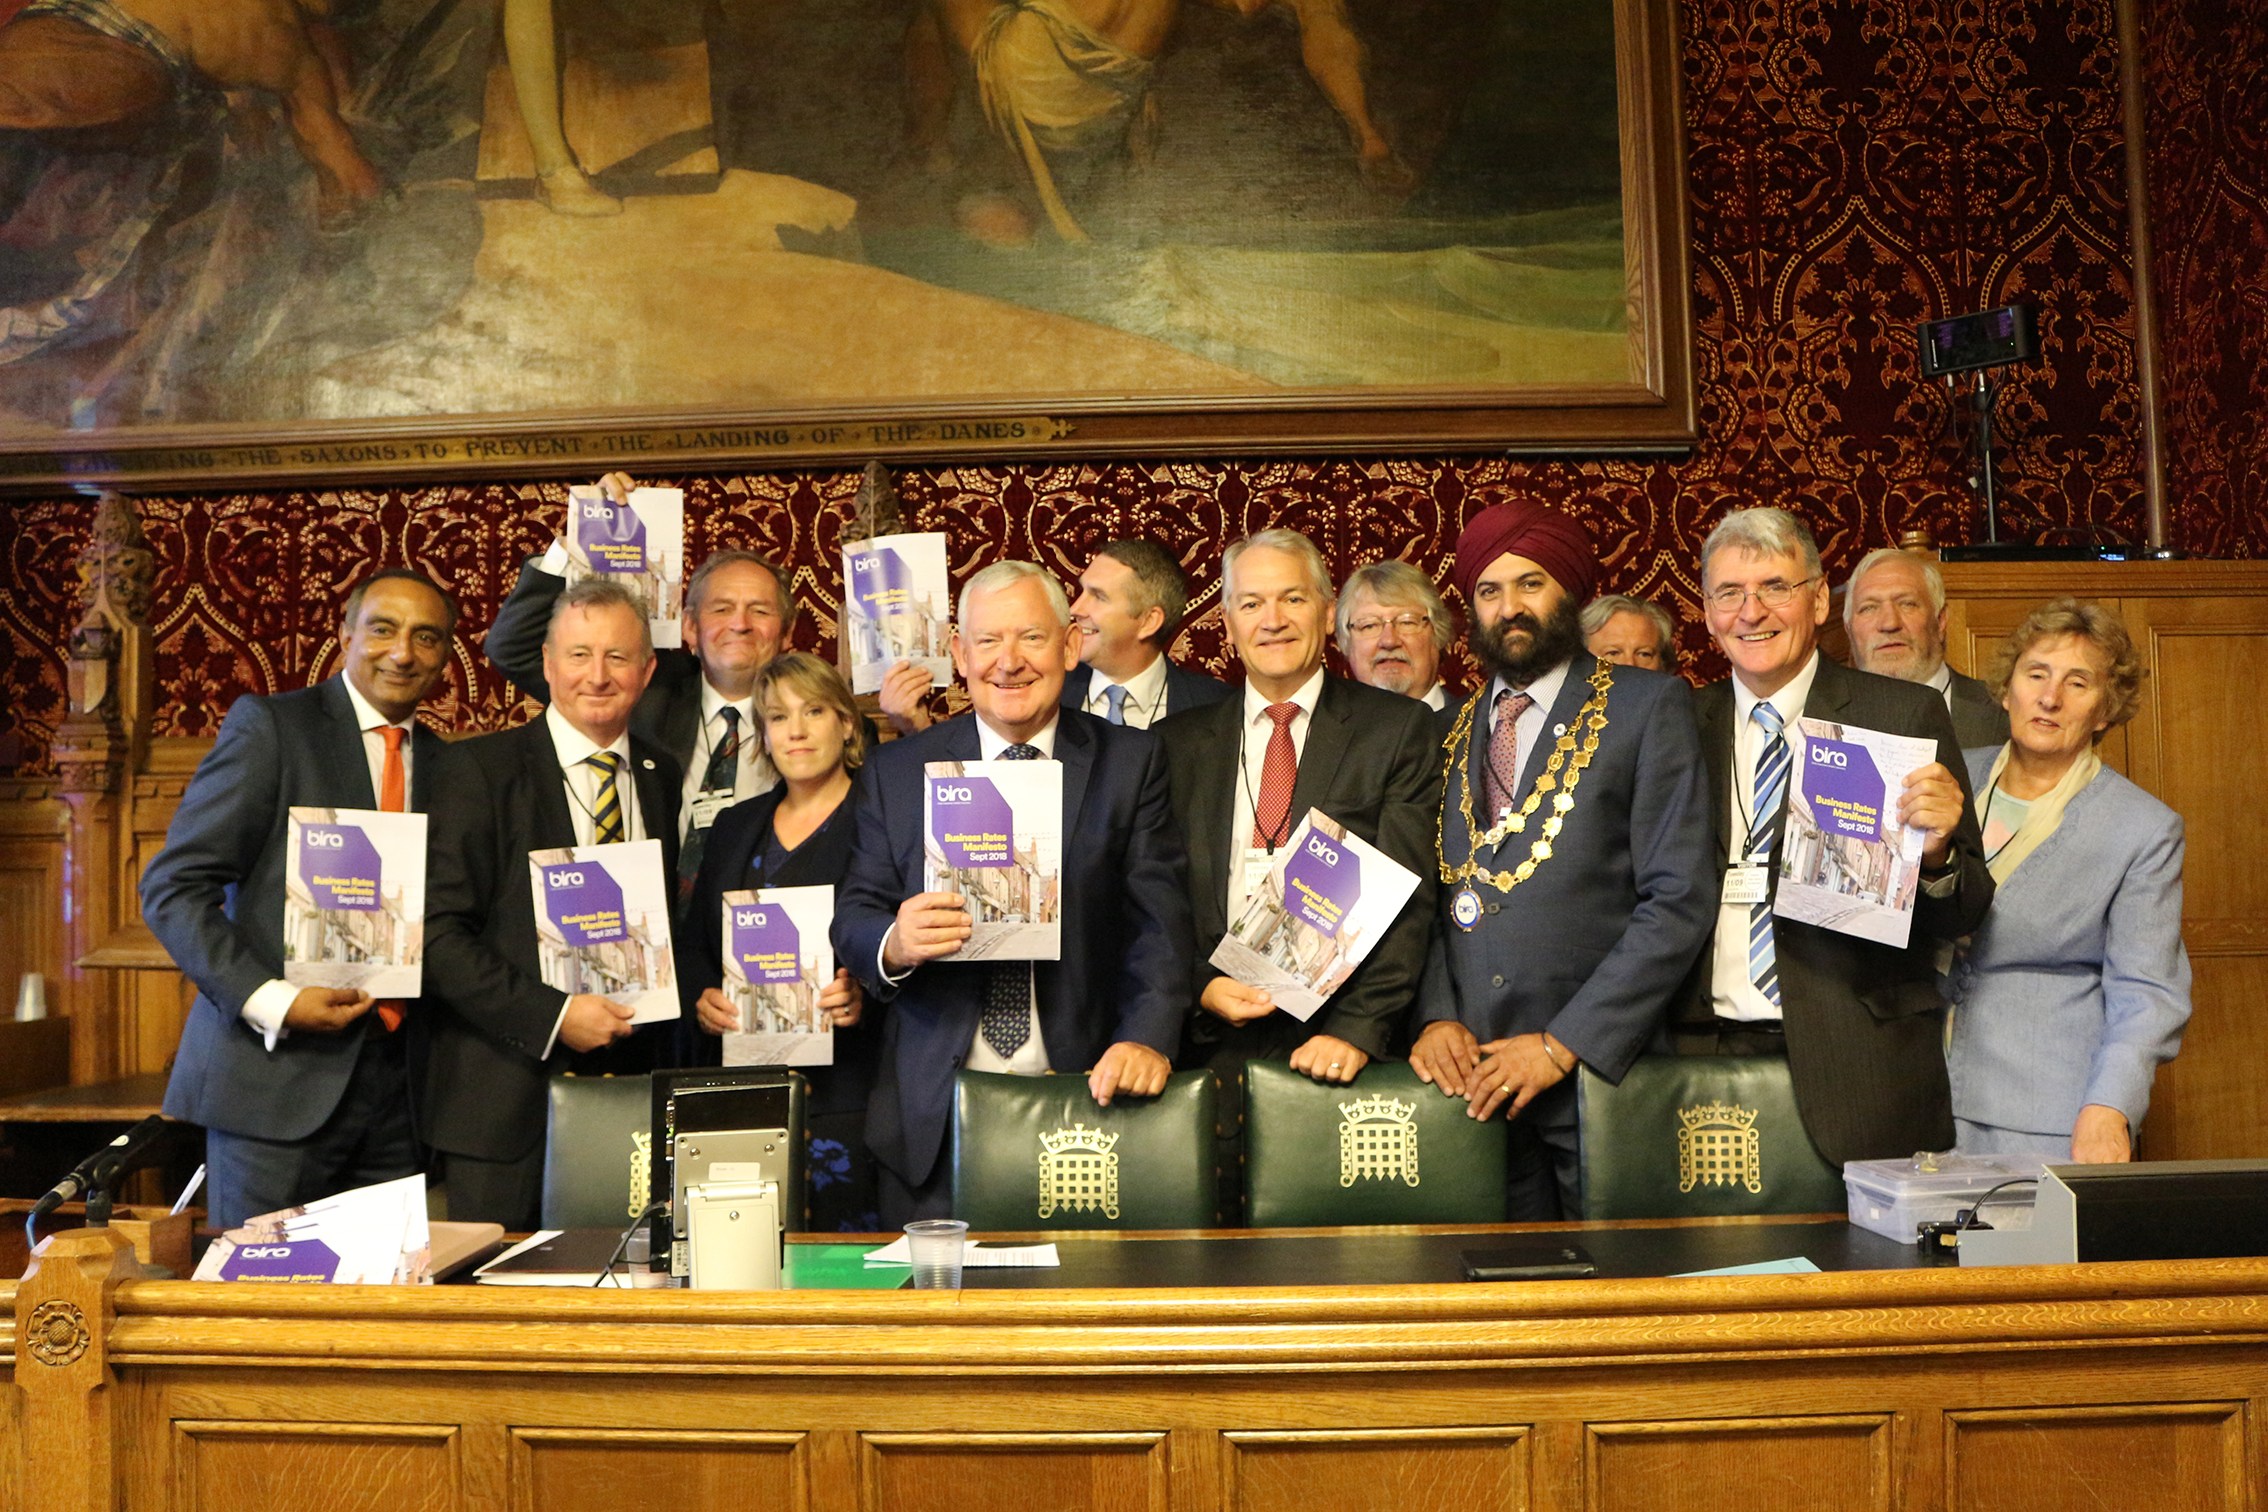 Above: Members of the bira team in the Houses of Parliament delivering their Business Rates Reform manifesto to MPs in an effort to help independent retailers.